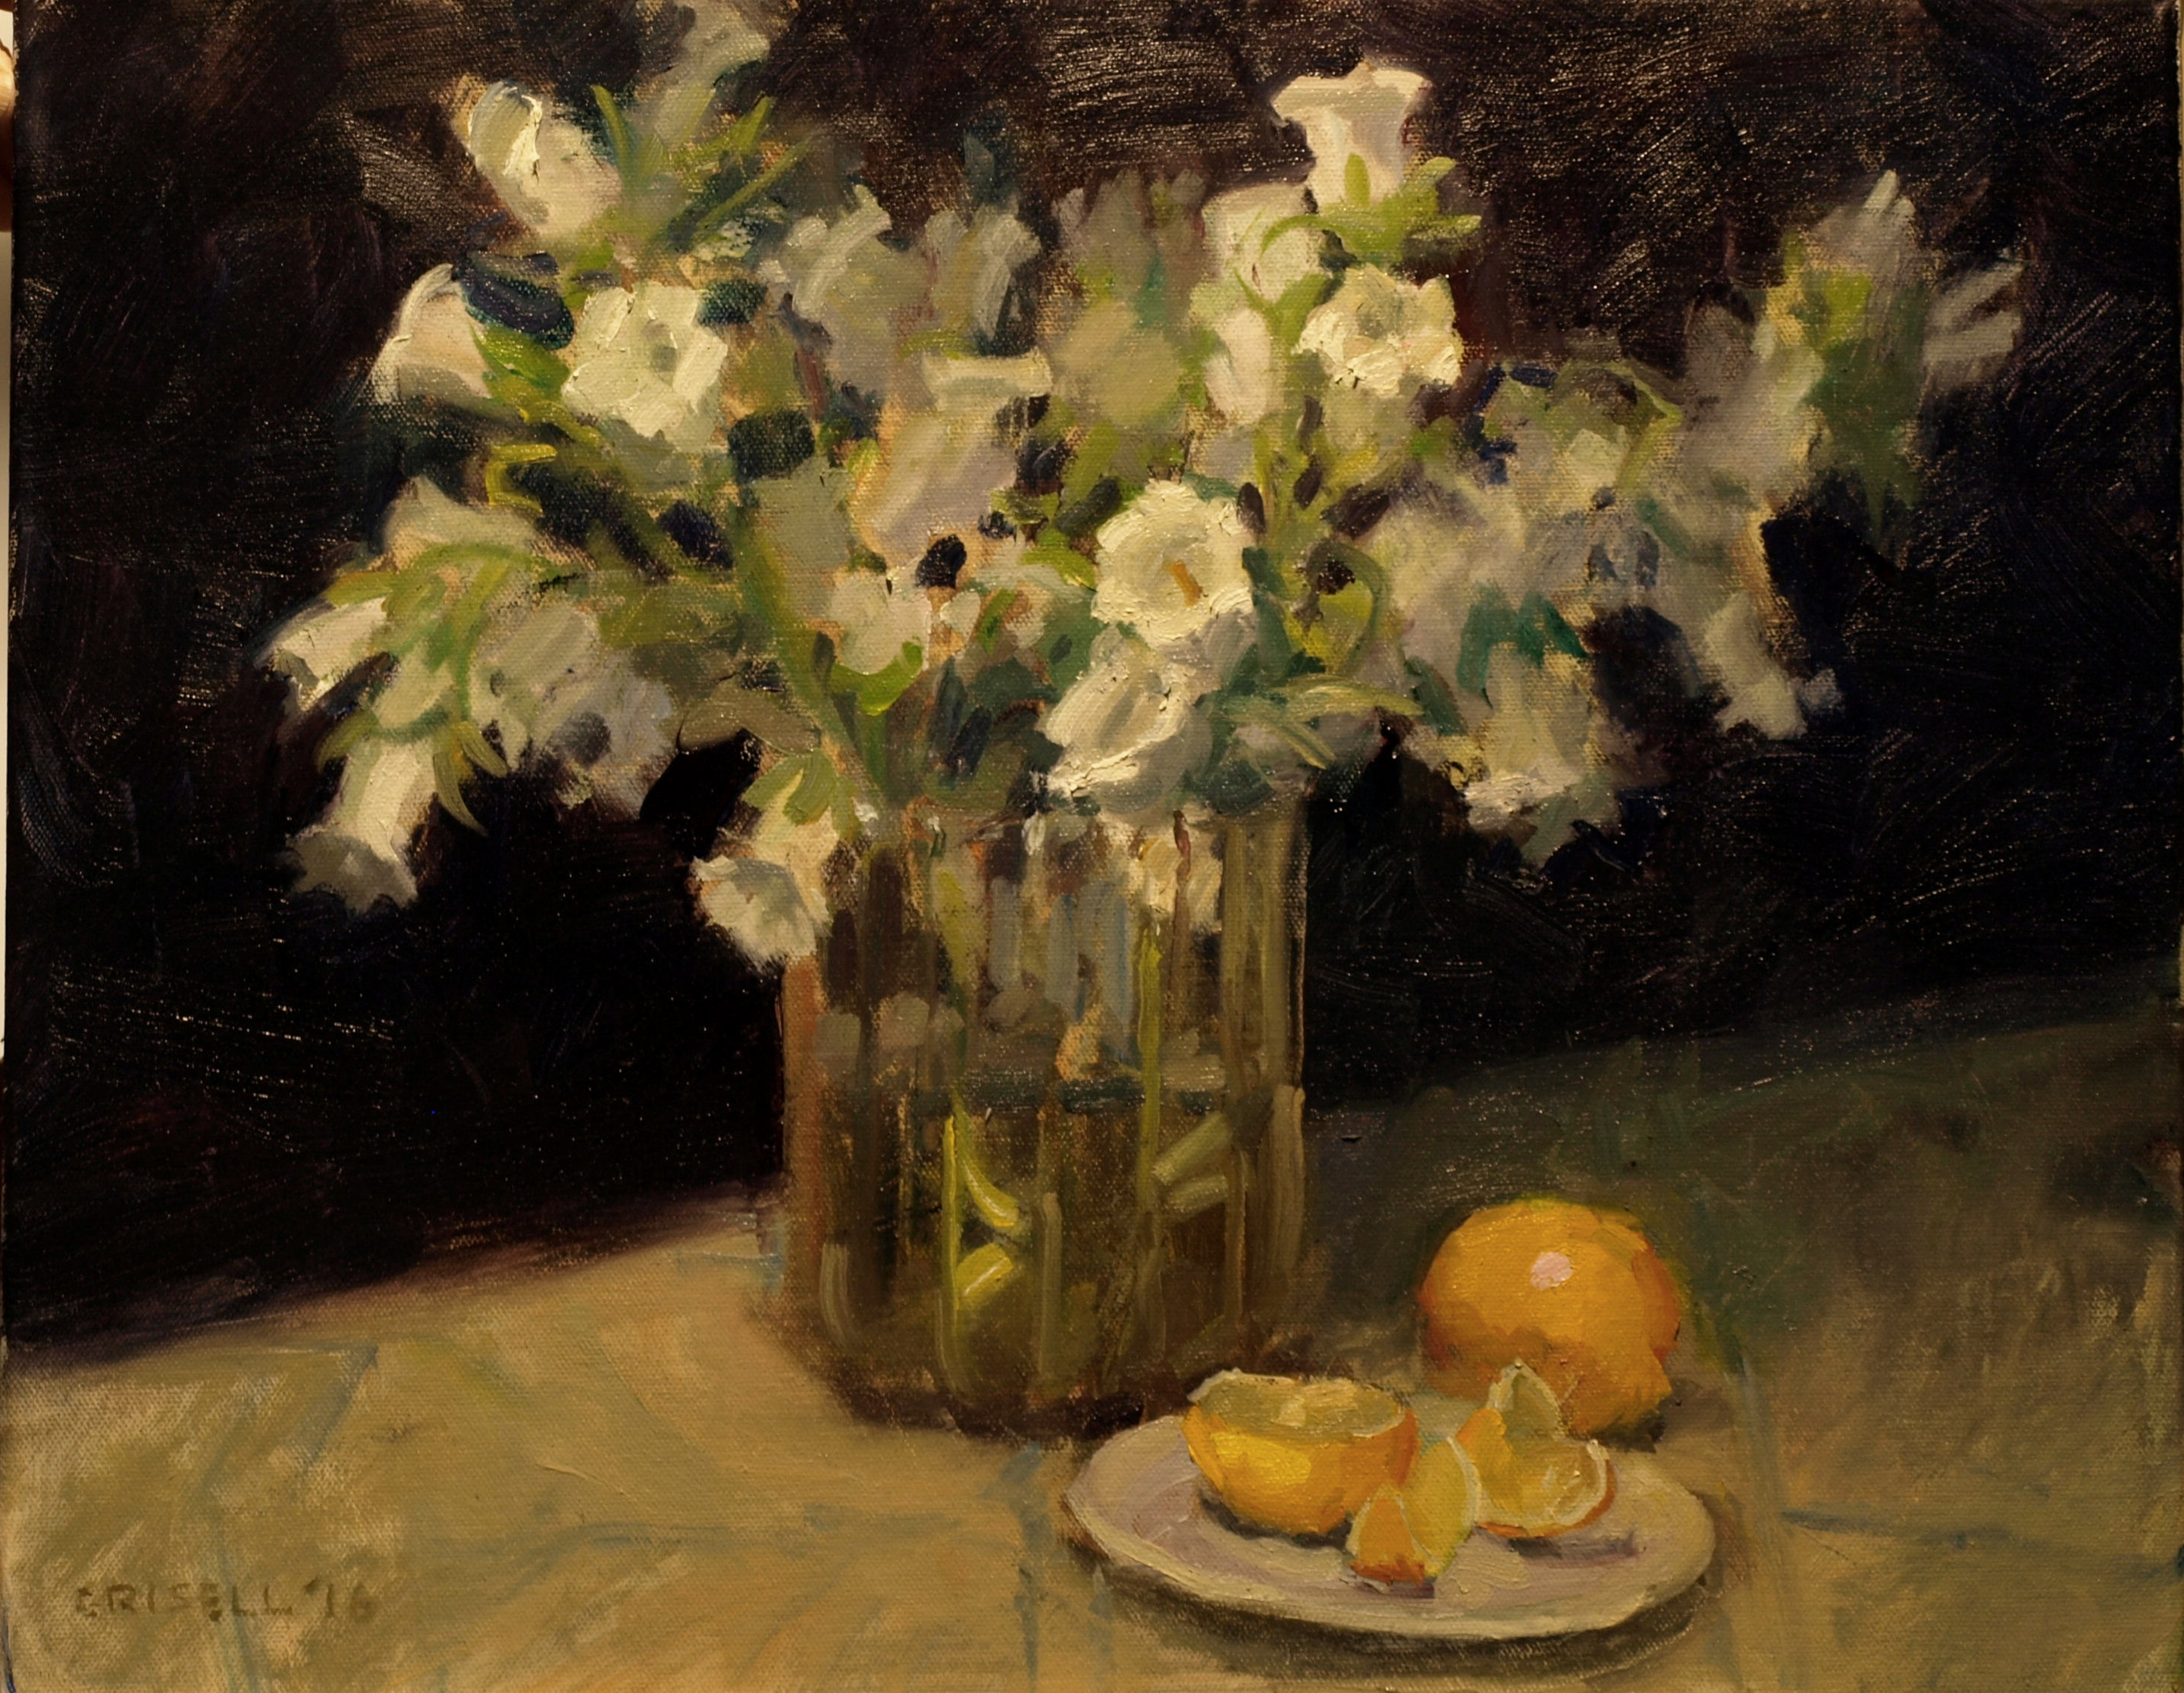 Lisianthus, Oil on Canvas, 16 x 20 Inches, by Susan Grisell, $550